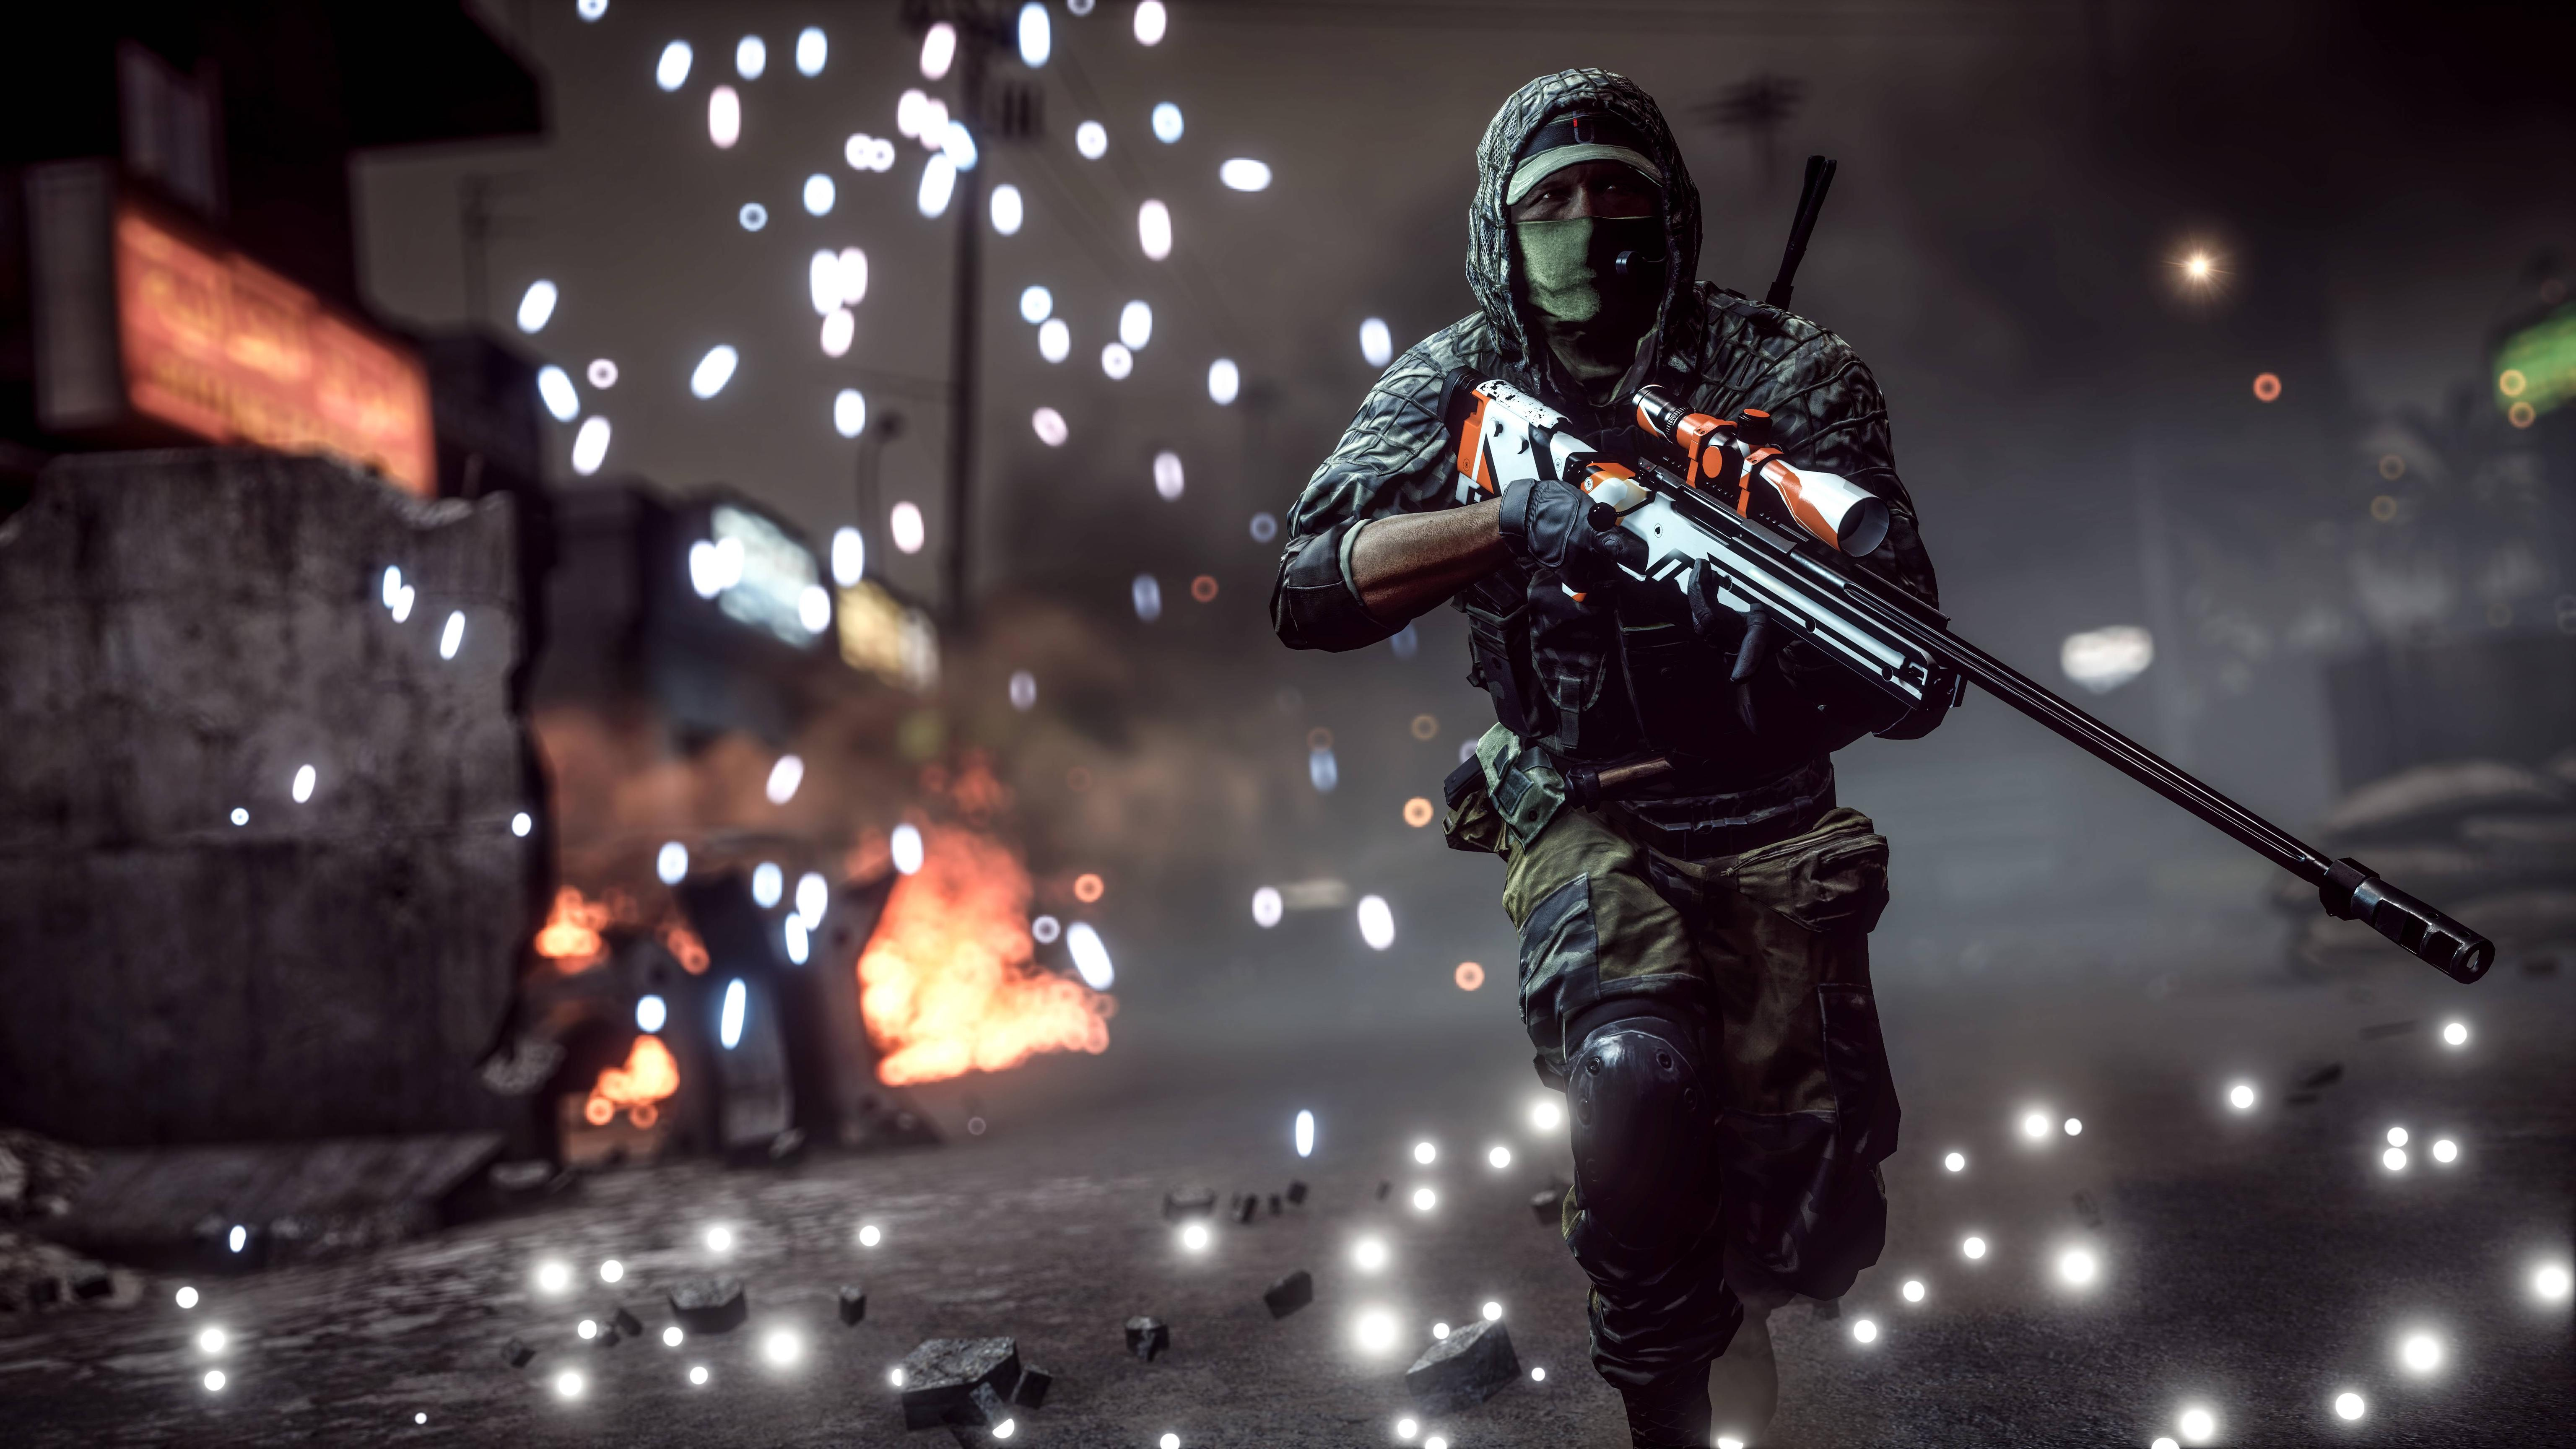 battlefield 4 hd, hd games, 4k wallpapers, images, backgrounds